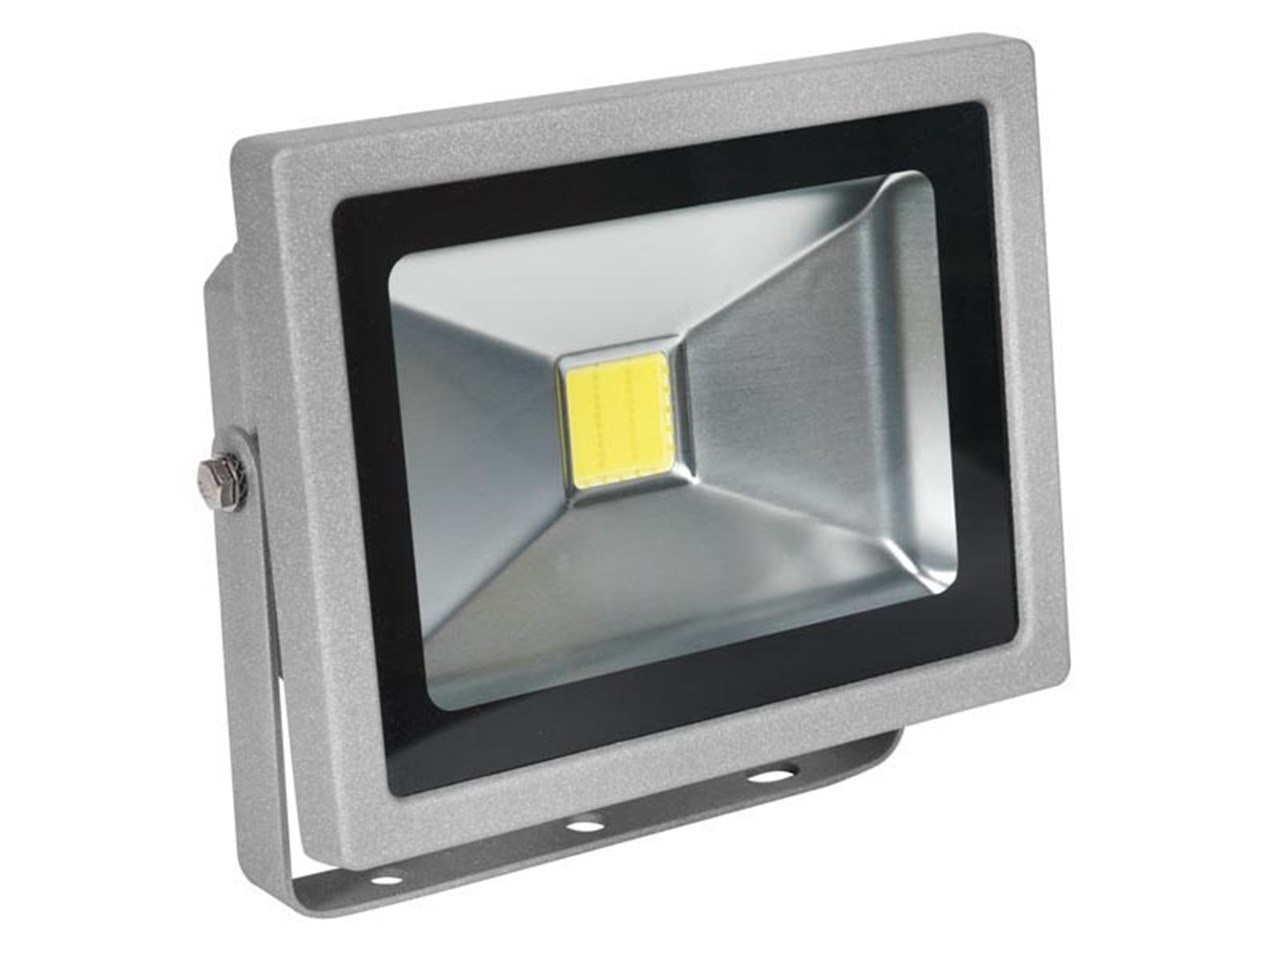 Sealey led120 led chip floodlight with wall bracket 20w 230v aloadofball Image collections